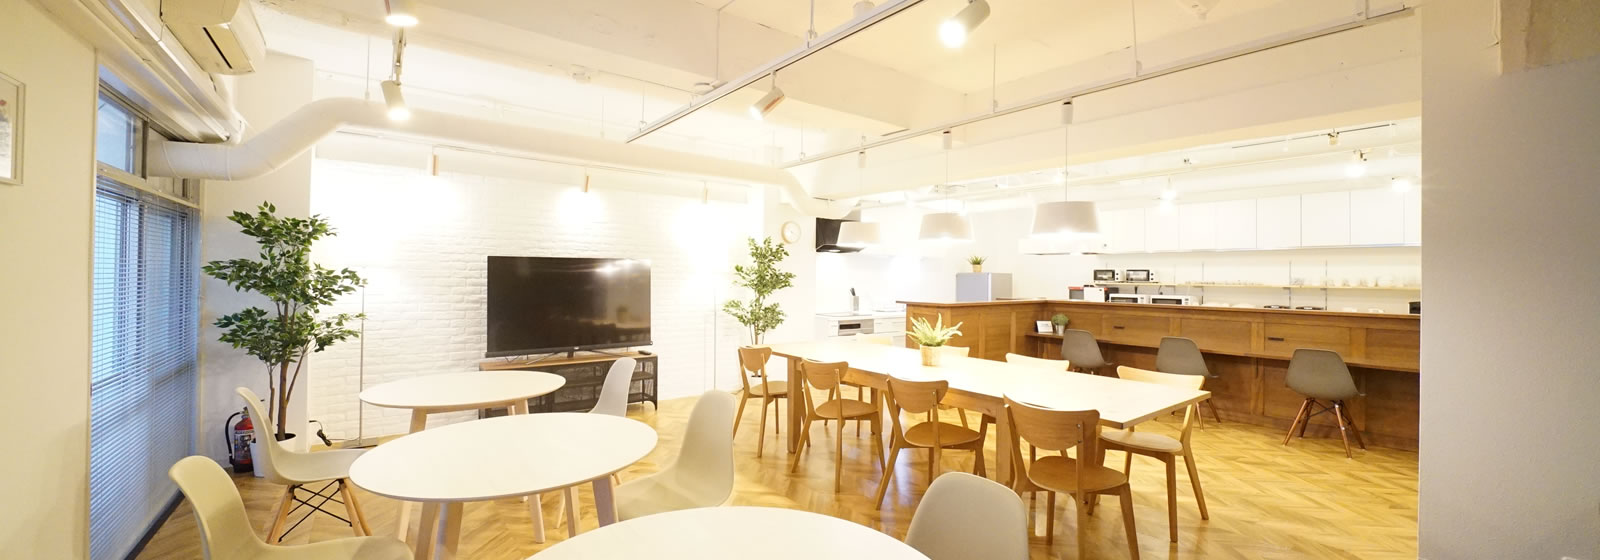 Couverture Nakno fujimicho Location that 10 minutes to Shinjuku 25 minutes to Ginza access by subway is outstanding access. 29,000 yen to 59,000 yen